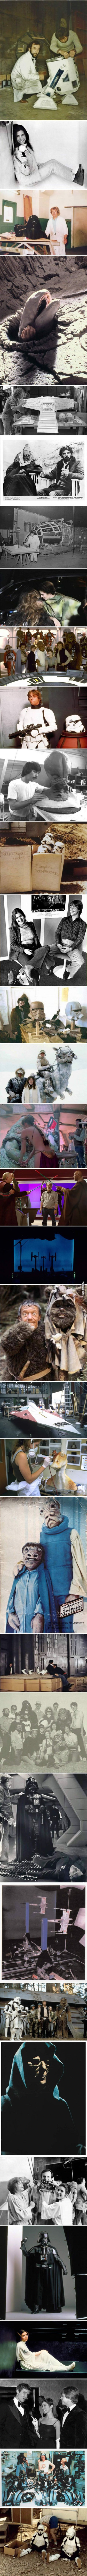 34 Star Wars Behind The Scene Photos You Might Not Have Seen Before (Part 4)